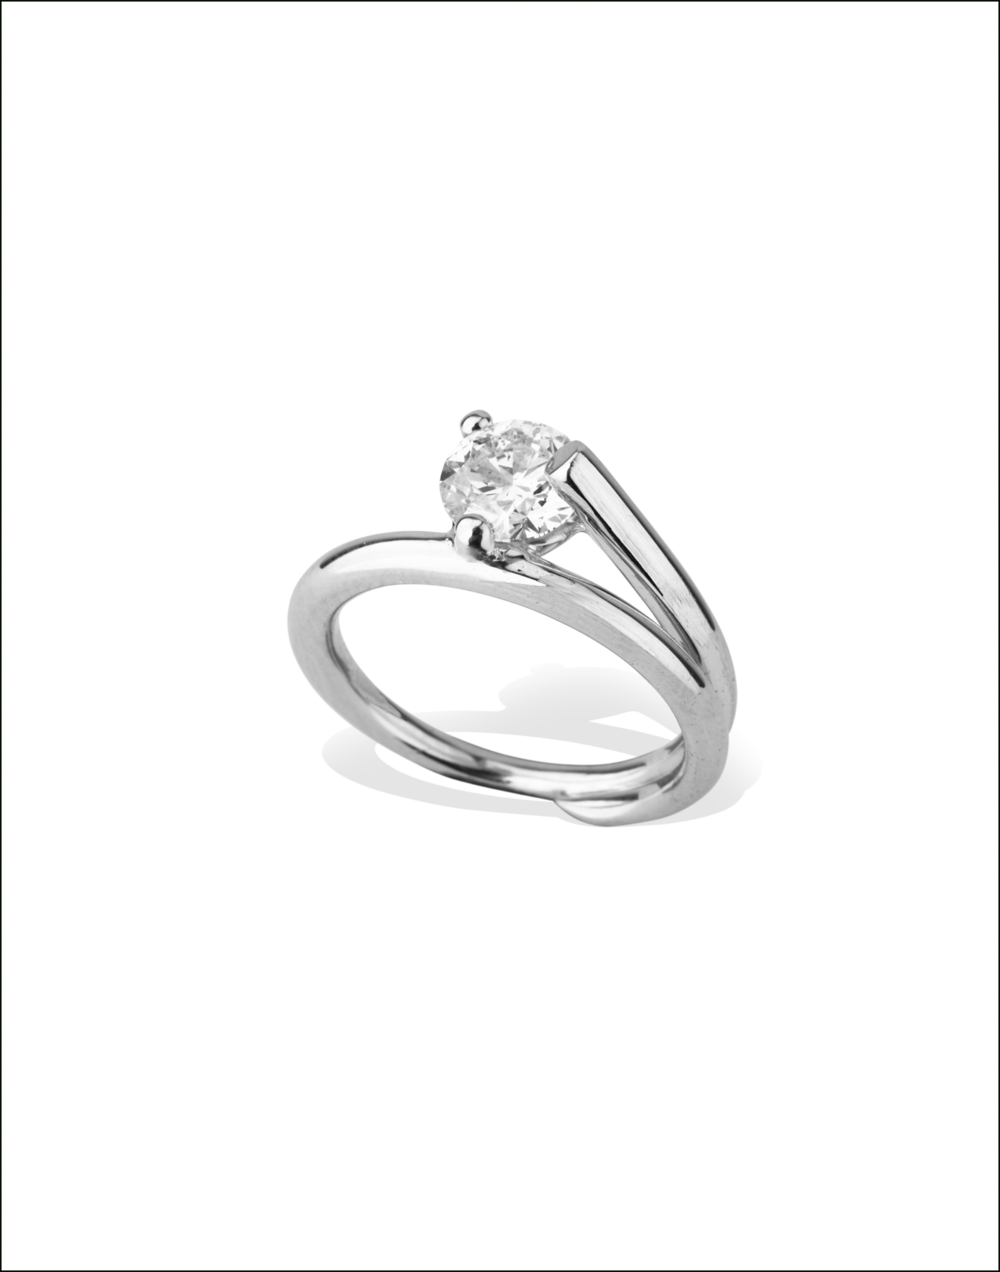 Completedworks-Subverted-Flower-Bridal-Ring-WHITE-GOLD-1-1.png